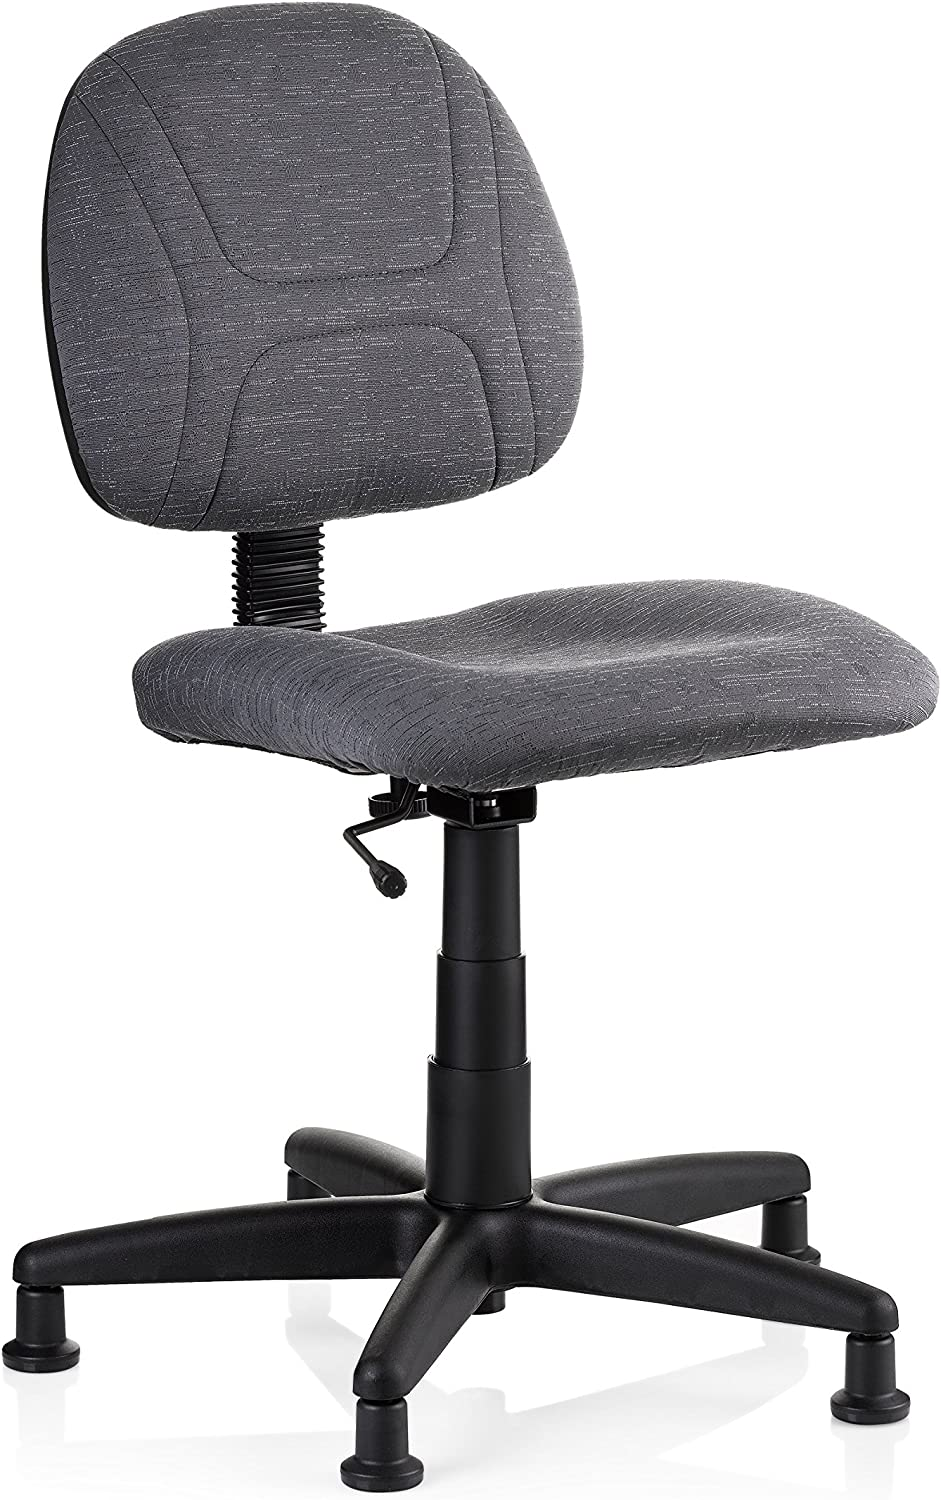 Reliable SewErgo Ergonomic Task Chair With Adjustable Back Sewing Chair, Easy Glide, Height Adjustable, Contoured Cushion, Waterfall Edge Seat, 250Lb Weight Capacity, Heavy Duty Made In Canada